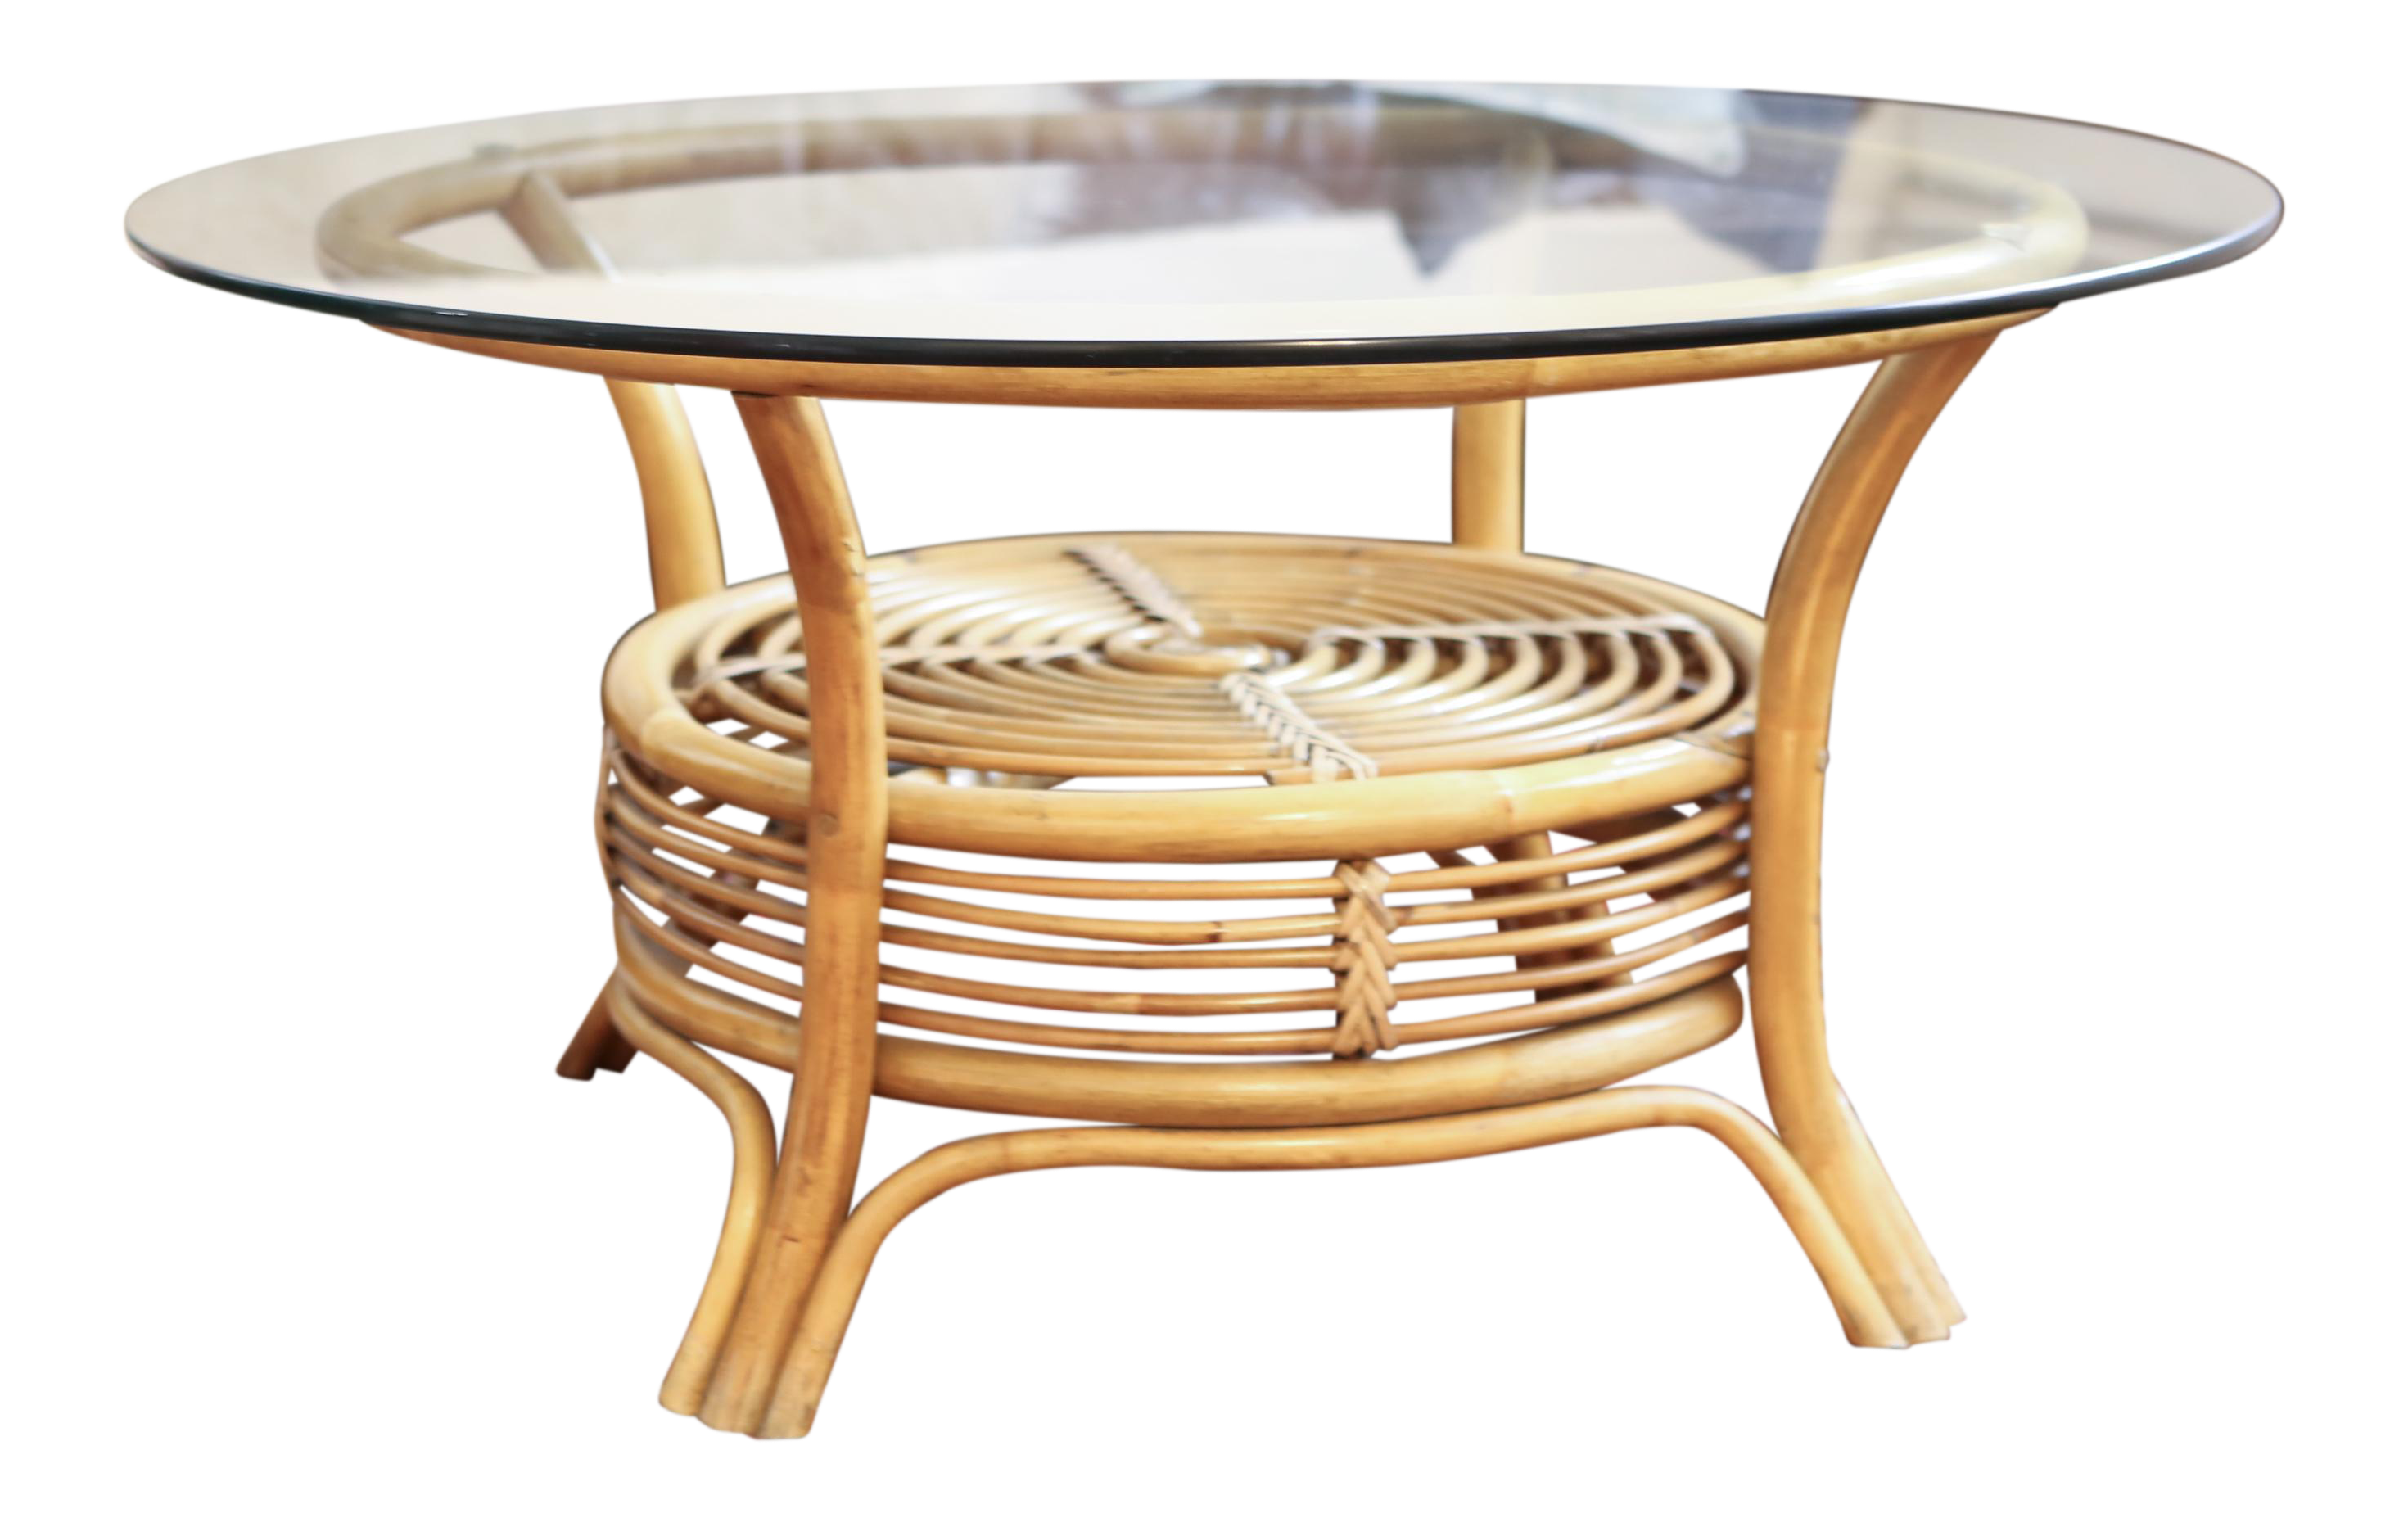 Round Rattan Coffee Table With Glass Top Answerplane Com Rattan Coffee Table Bamboo Coffee Table Coffee Table